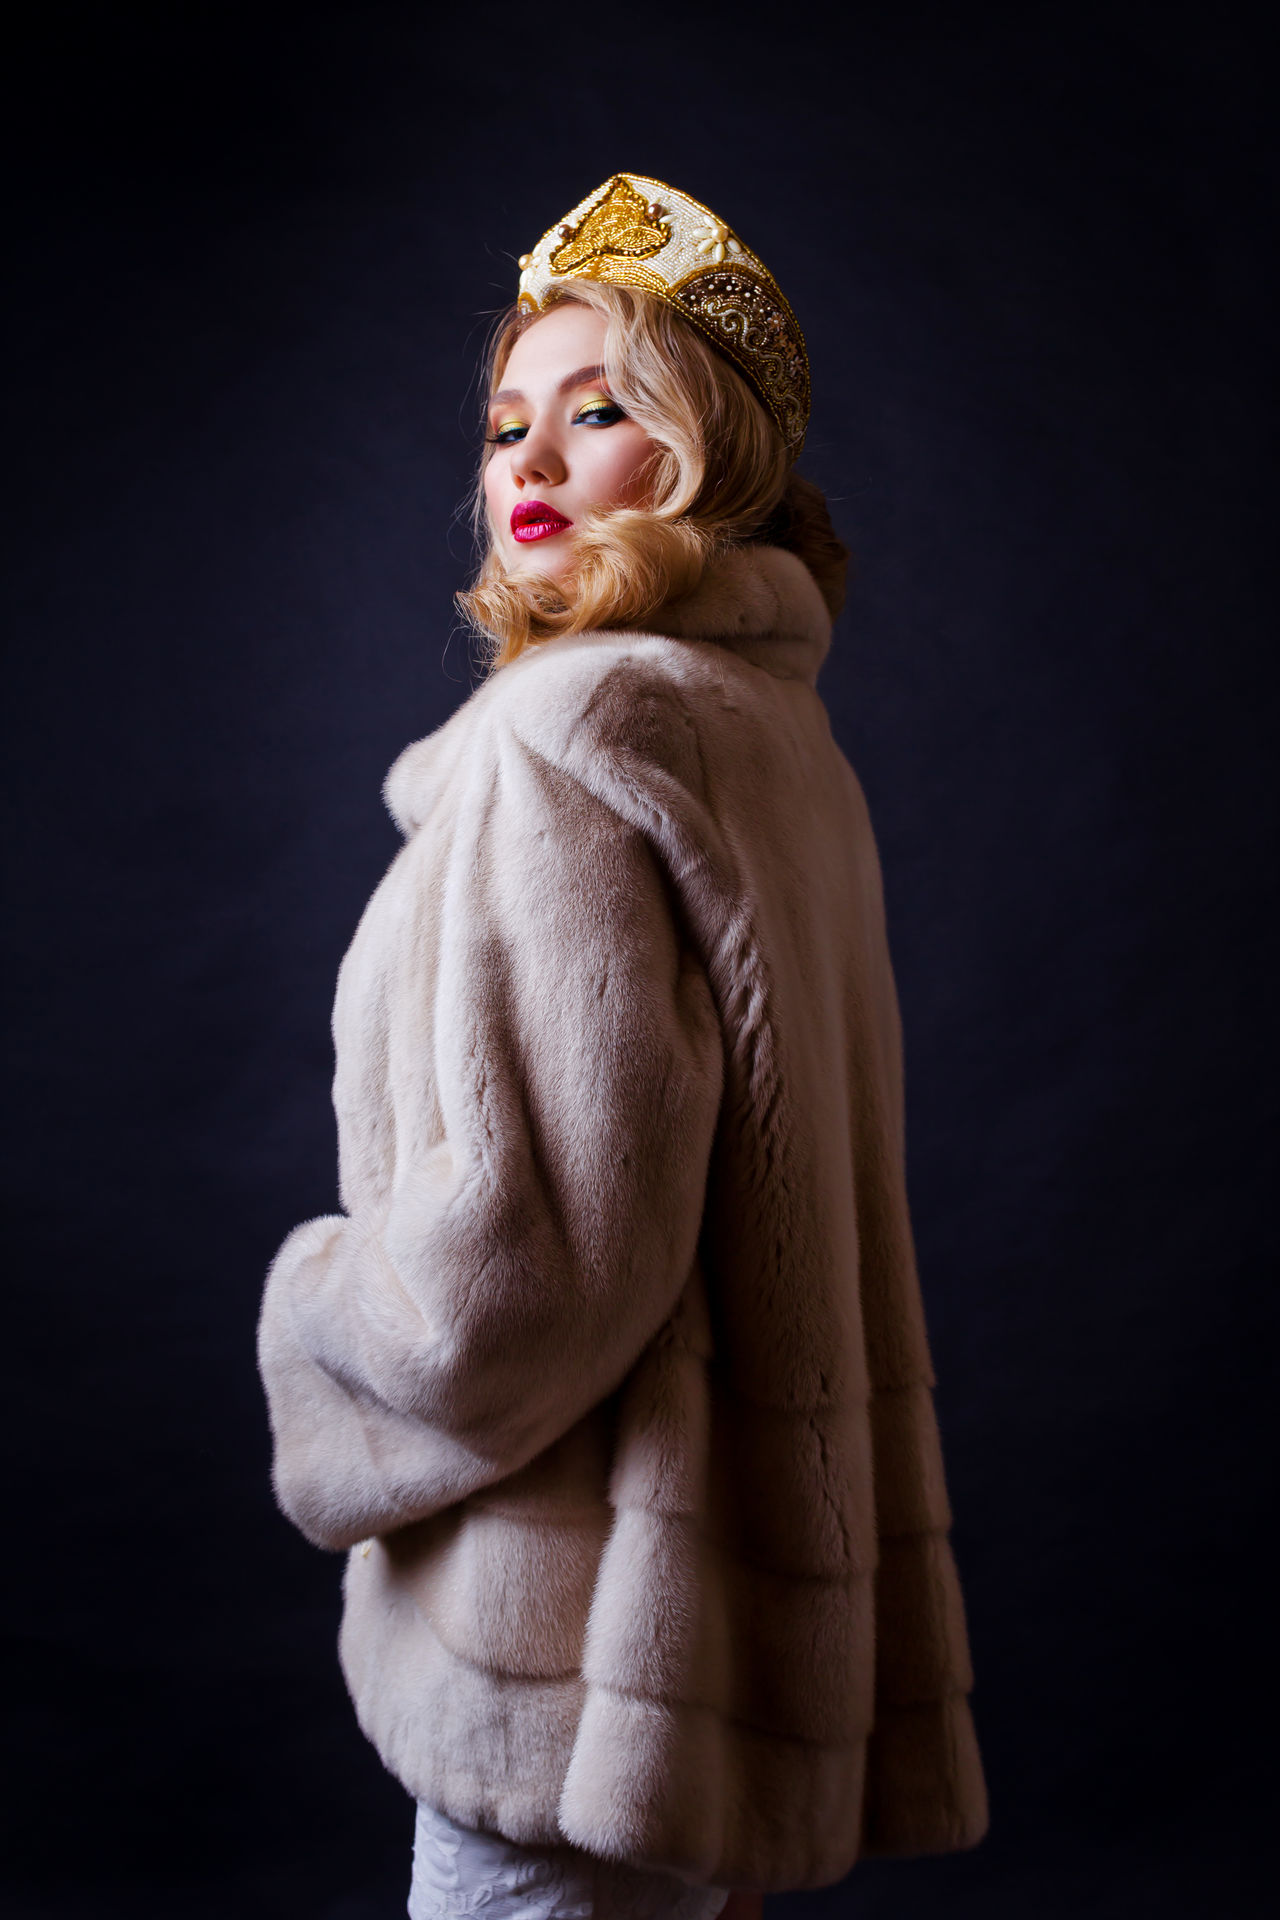 Beautiful People Beautiful Woman Beauty Blond Hair Cover Crown Editorial  Editorial Fashion Editorialphotography Fashion Fashion Fashion Photography Fur Magazine Magazine Cover Portrait Queen Shooting Studio Studio Photography Studio Shot Women